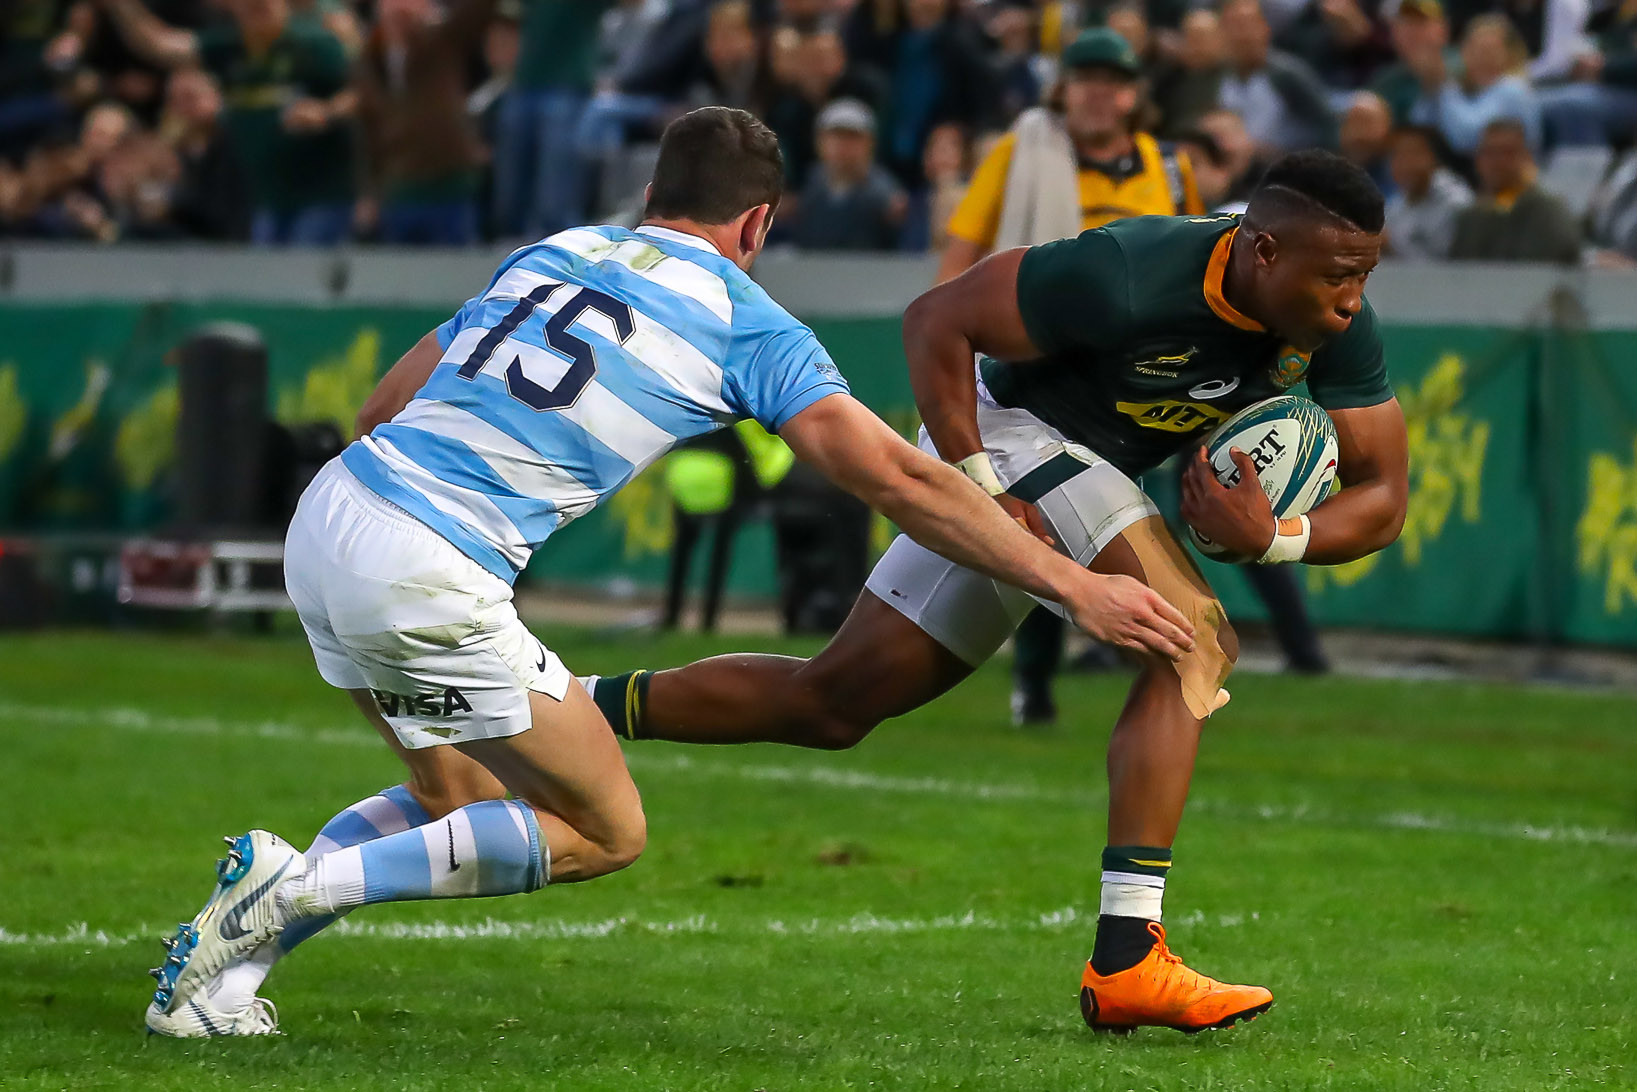 18 August 2018: Aphiwe Dyantyi put in a man of the match performance during the Rugby Championship match between South Africa and Argentina at Kings Park in Durban. (Photo by Gordon Arons/Gallo Images)